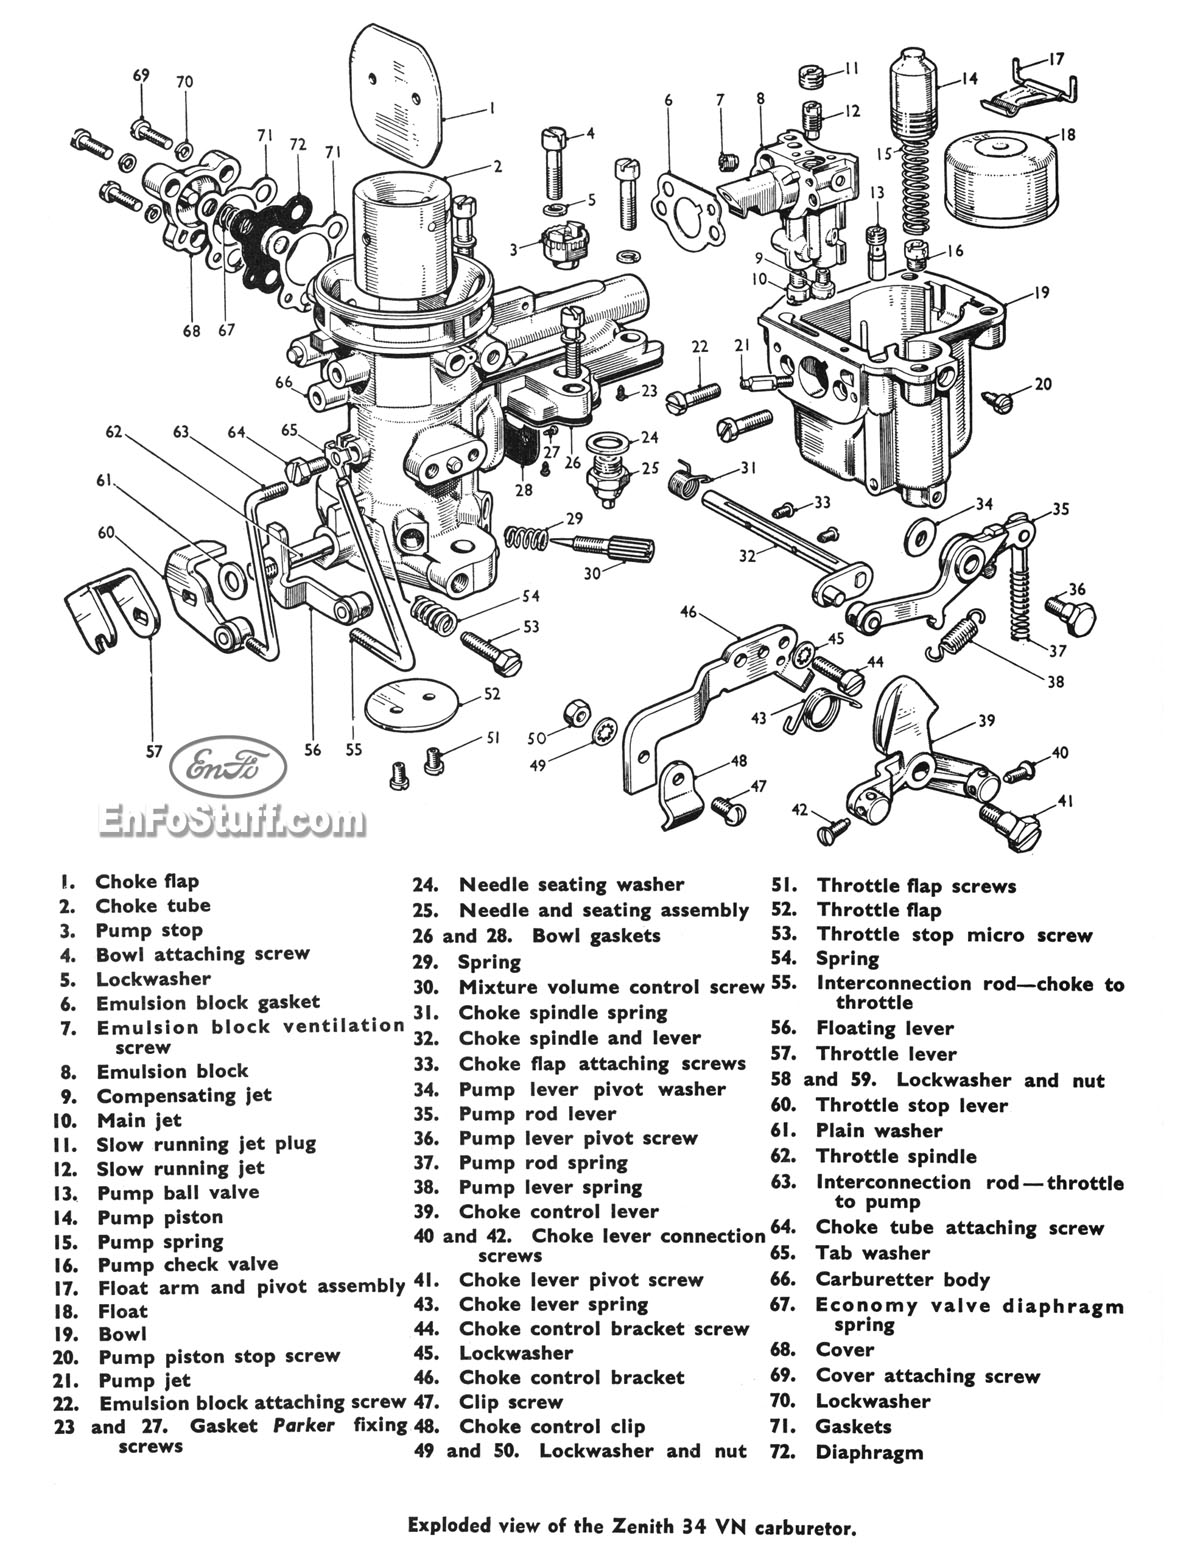 Zenith Carb Diagram Not Lossing Wiring Carburetor 34 Vn Consul Mkii And 315 Rh Enfostuff Com Harley Parts